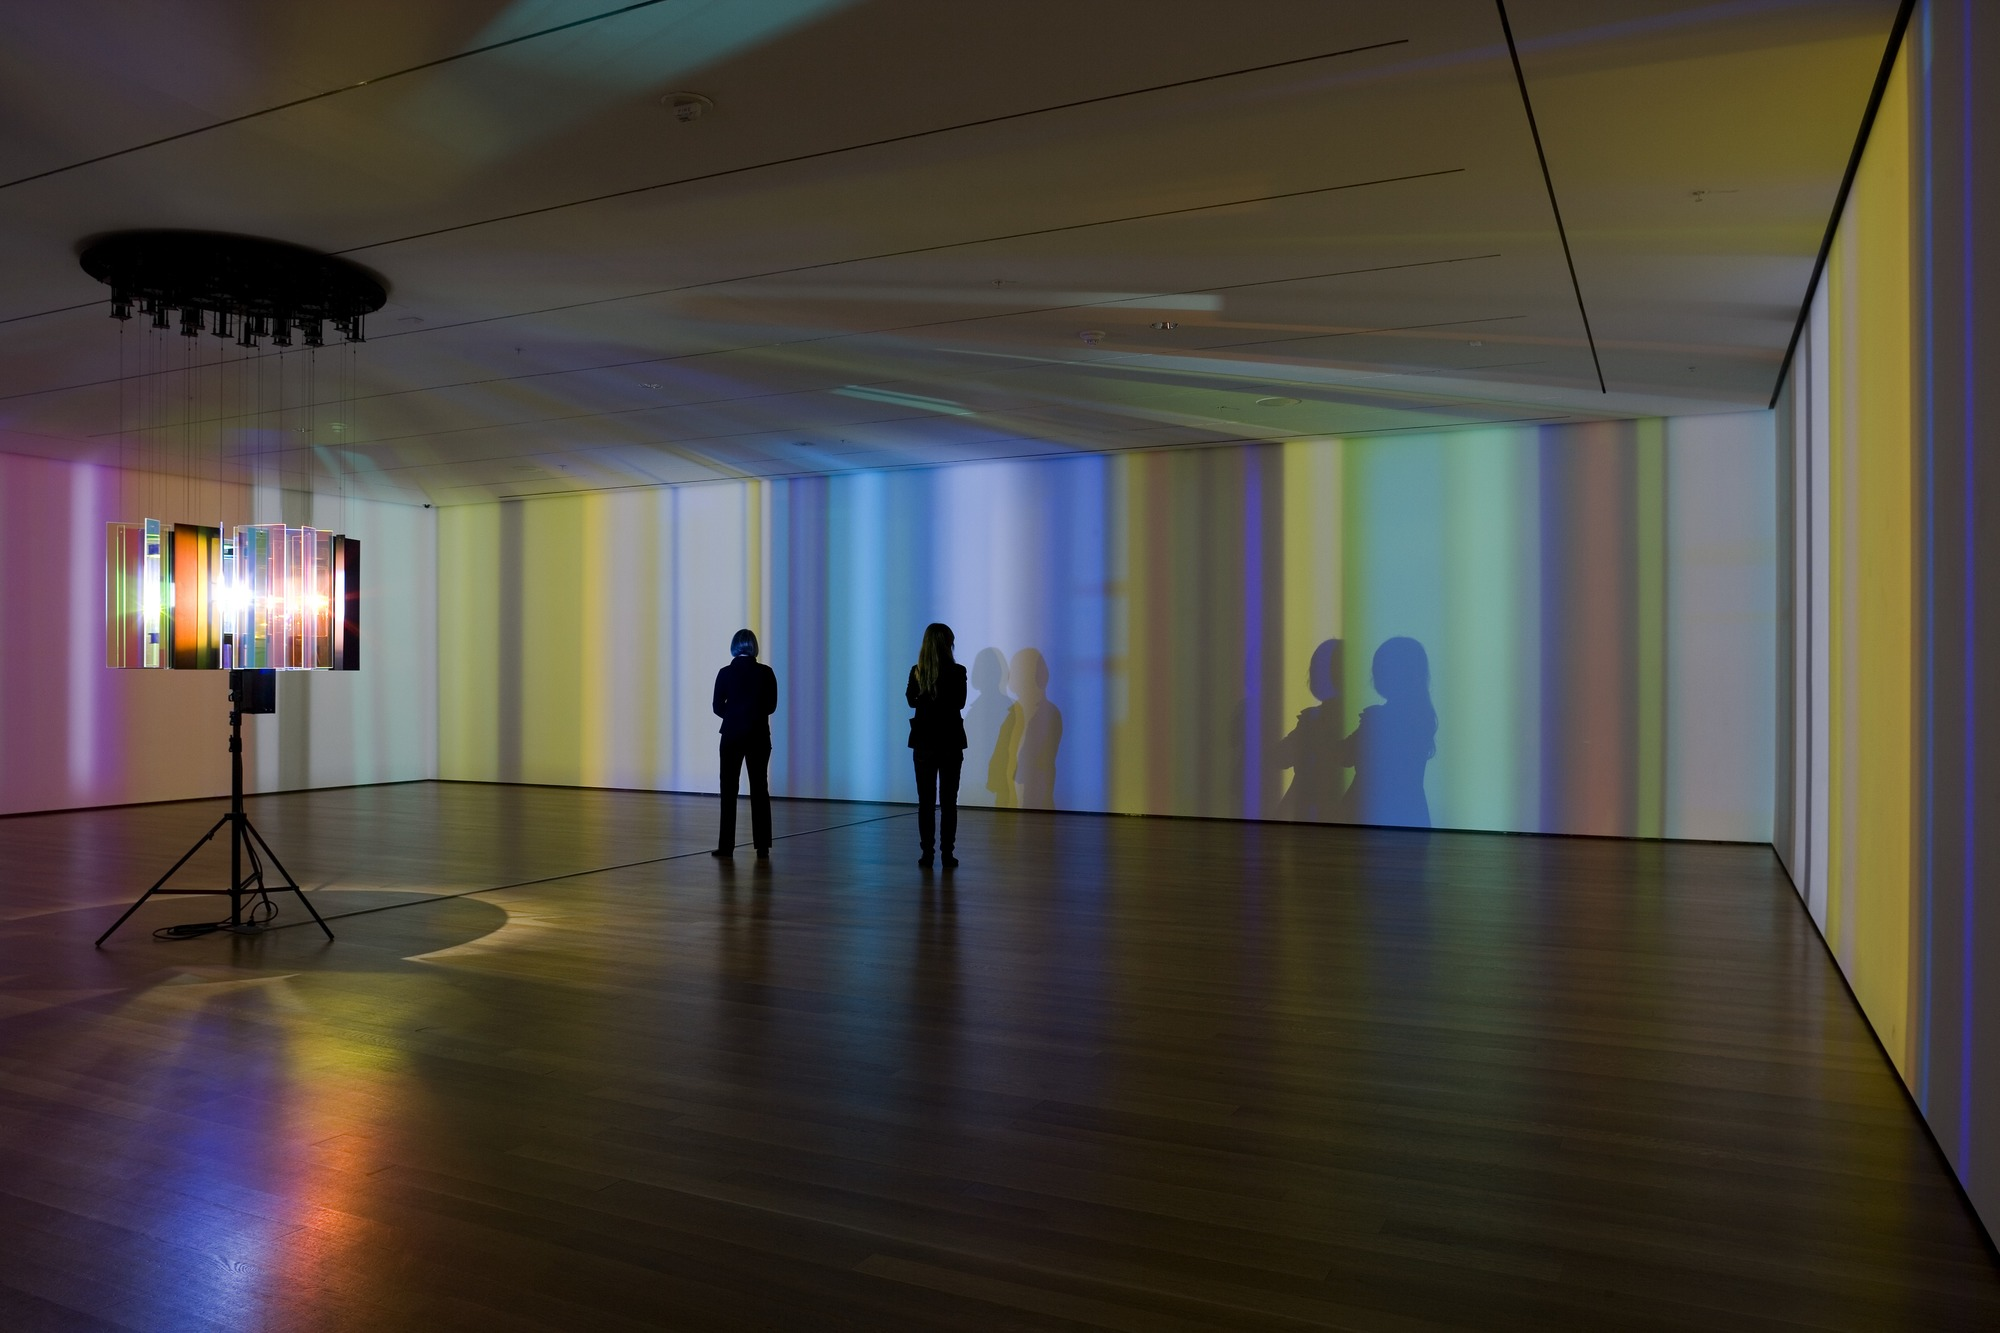 Image from Olafur Elisson : Take Your Time exhibition, MoMA, 2008 Source: https://www.moma.org/calendar/exhibitions/31?locale=en#installation-images